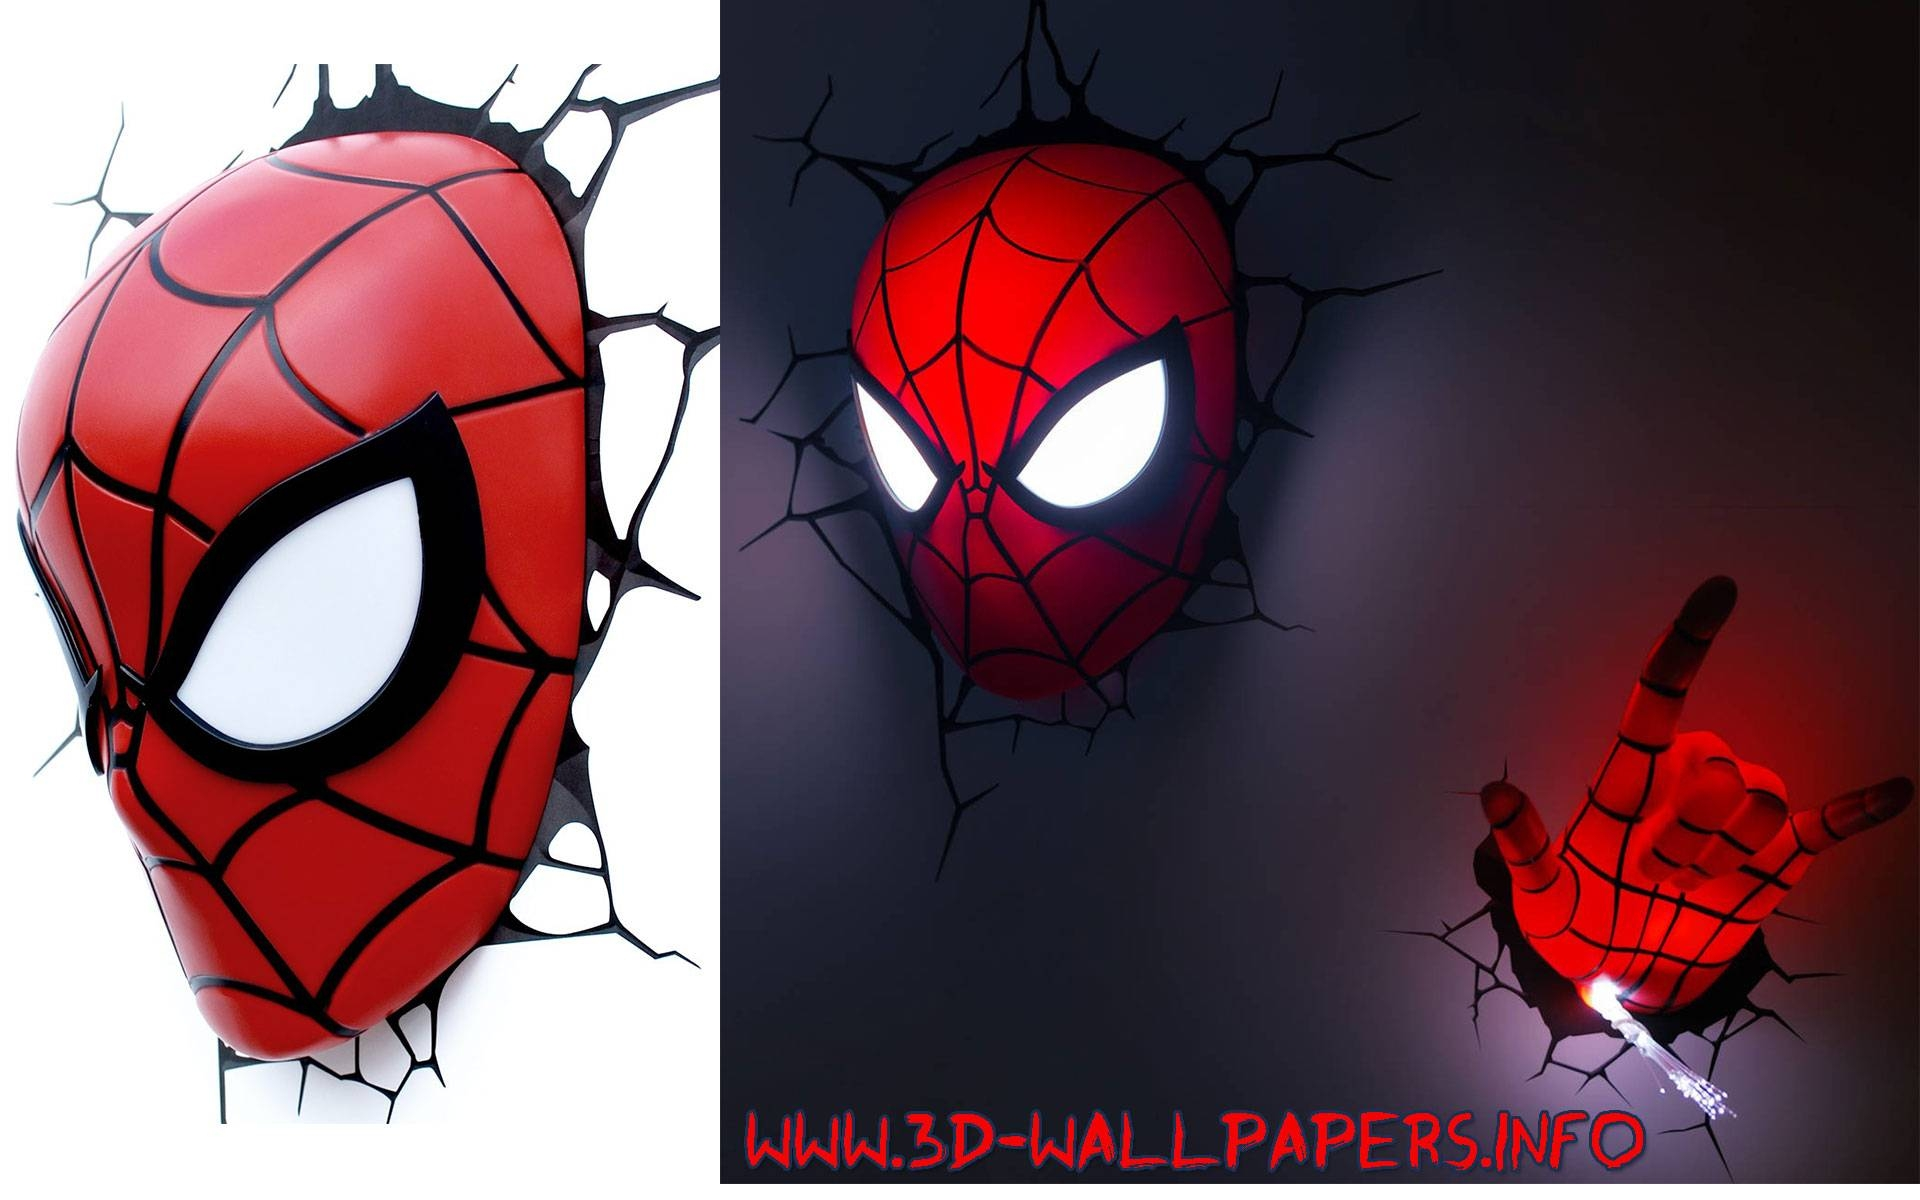 3D Wall Art Nightlight Spiderman Hand | Wallartideas For Most Up To Date Hulk Hand 3D Wall Art (View 3 of 20)